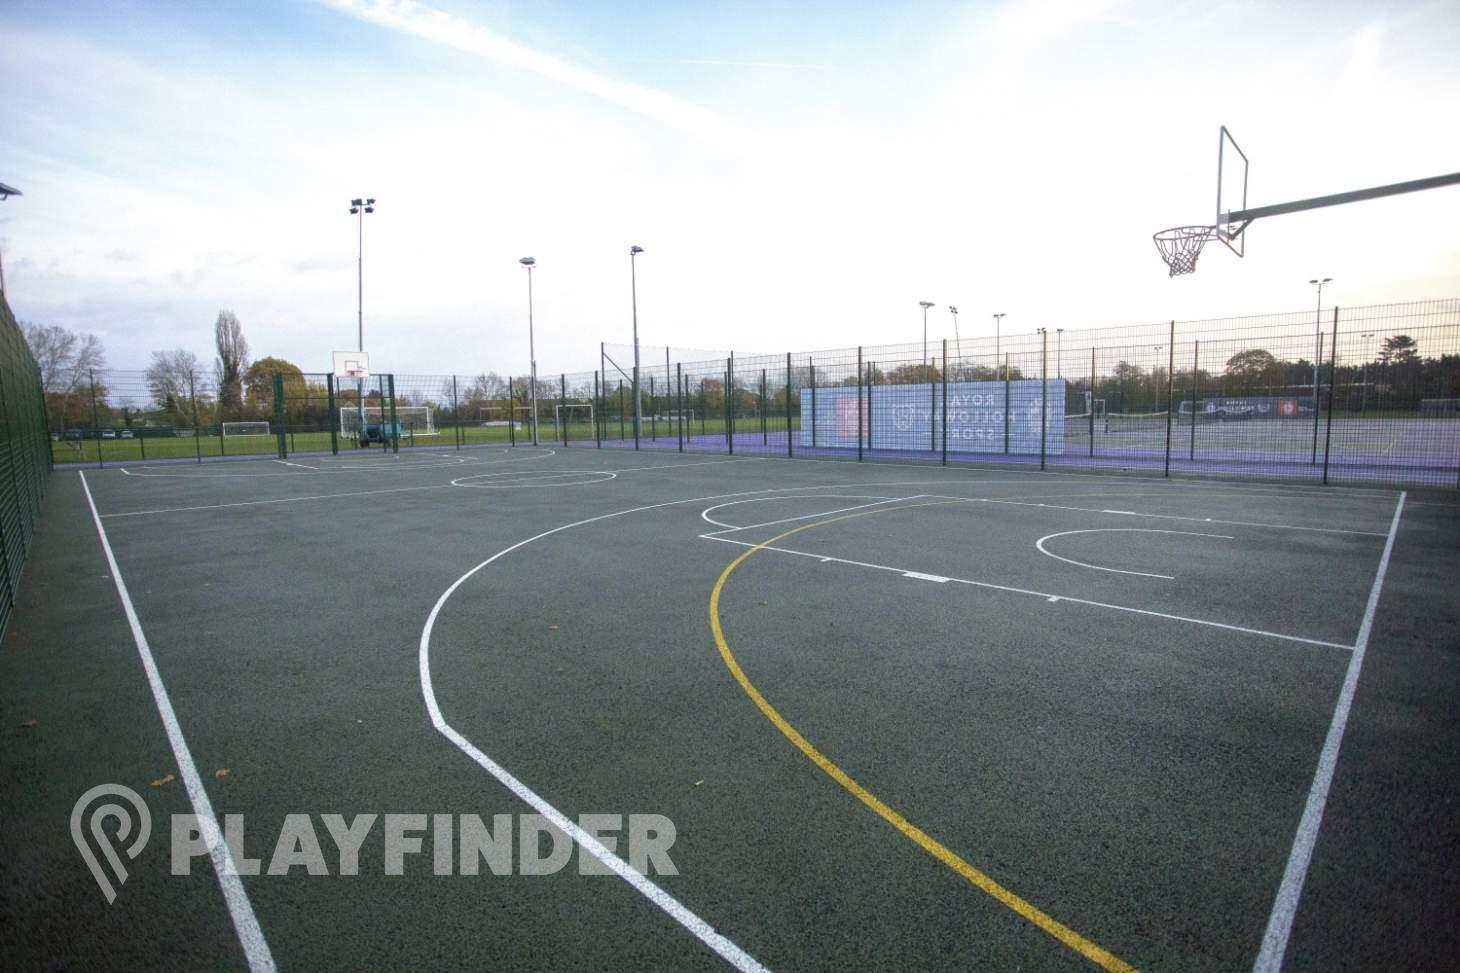 Royal Holloway University Sports Centre Outdoor | Hard (macadam) basketball court